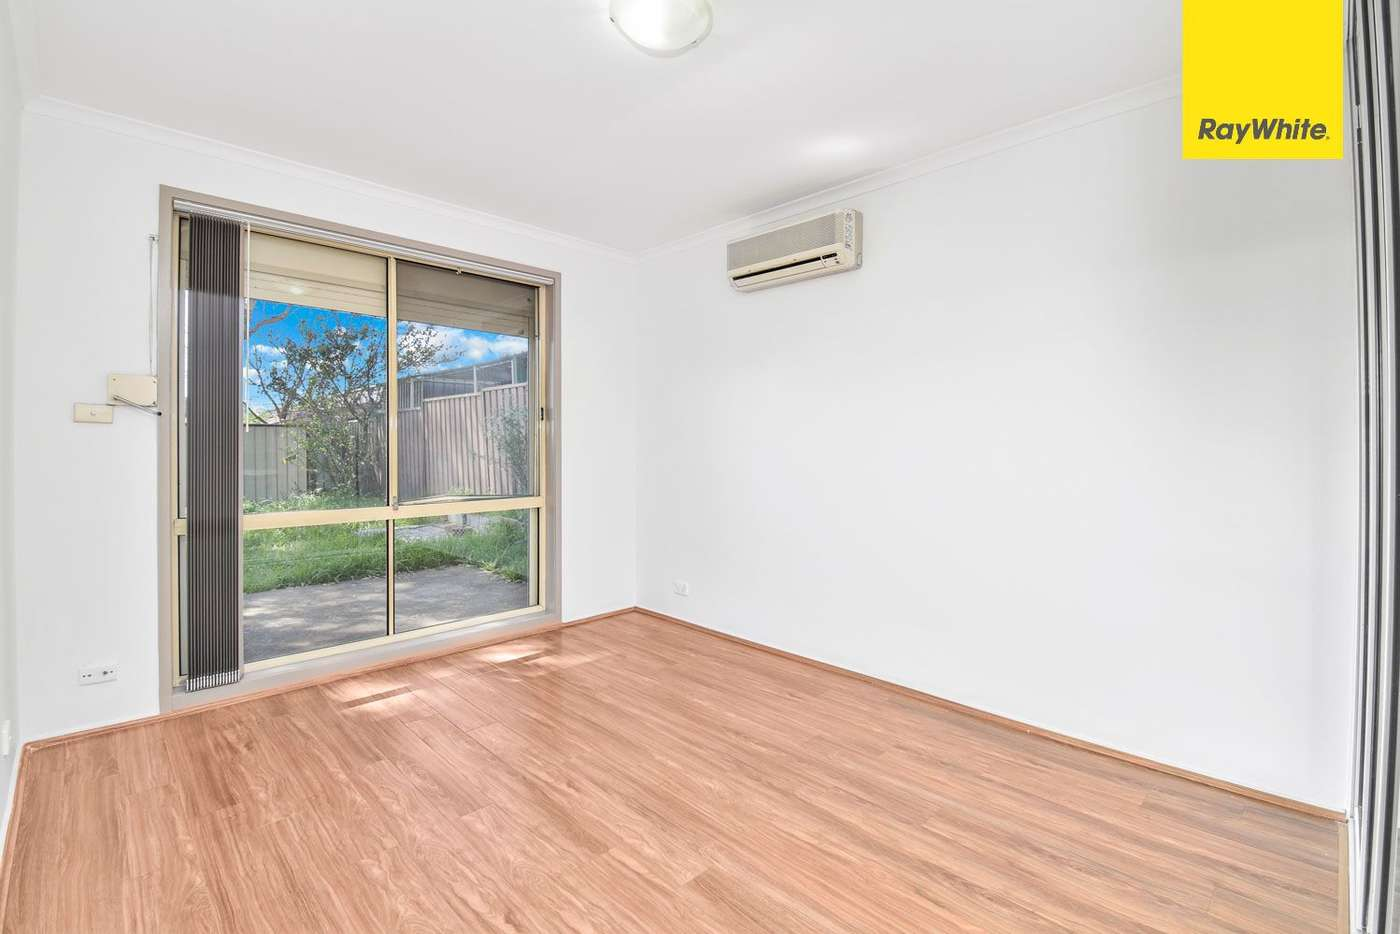 Sixth view of Homely house listing, 14 Alan Street, Mount Druitt NSW 2770